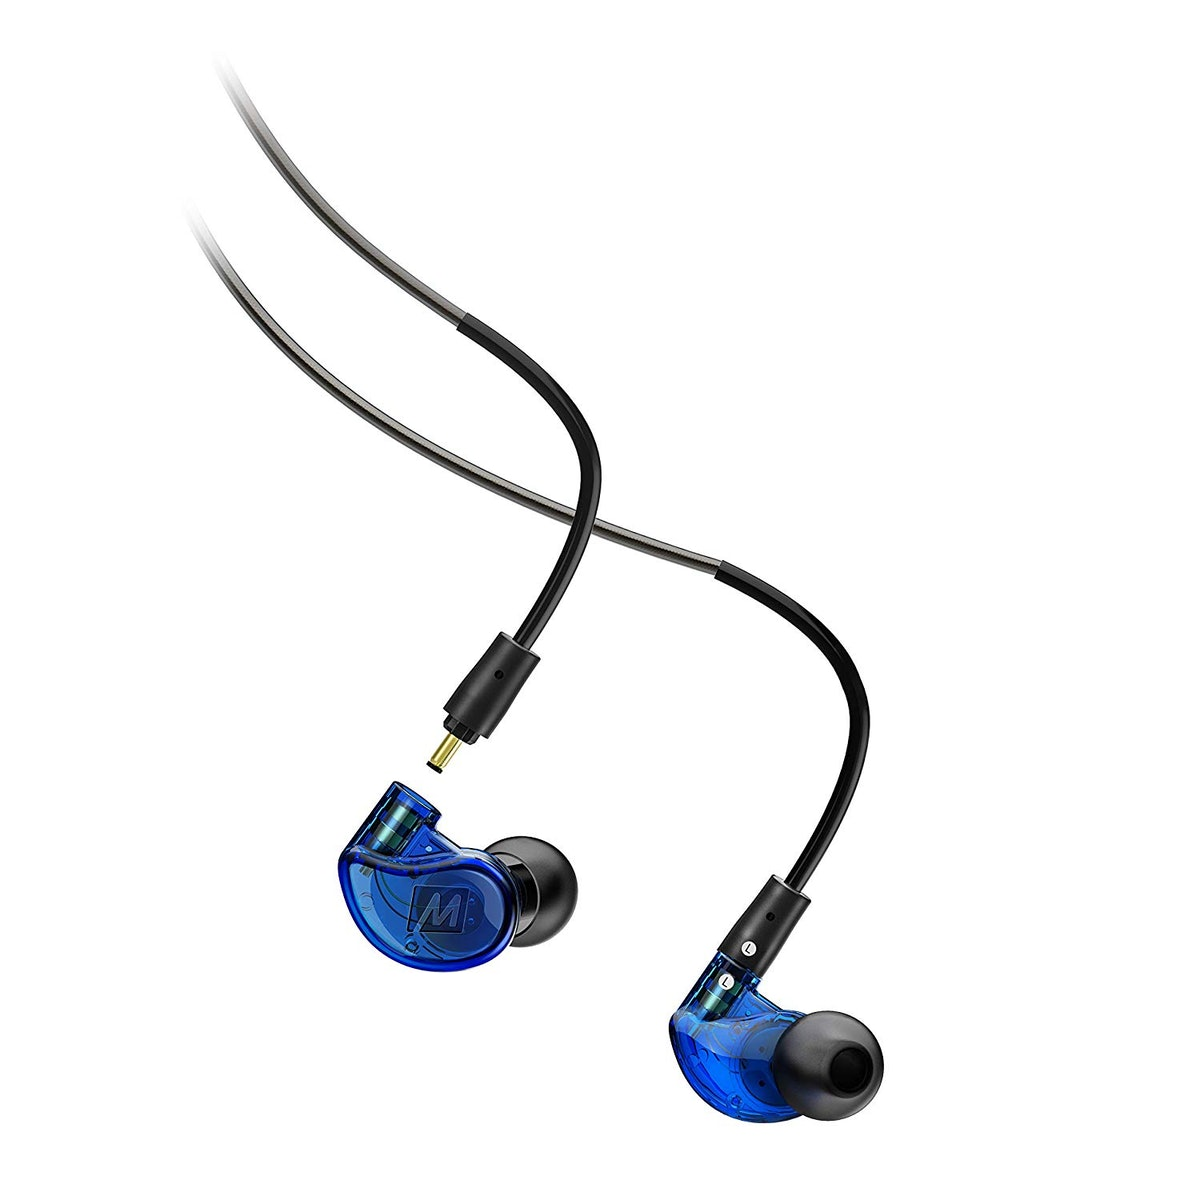 MEE audio M6 PRO Musicians' In-Ear Monitors with Detachable Cables; Universal-Fit and Noise-Isolatin...